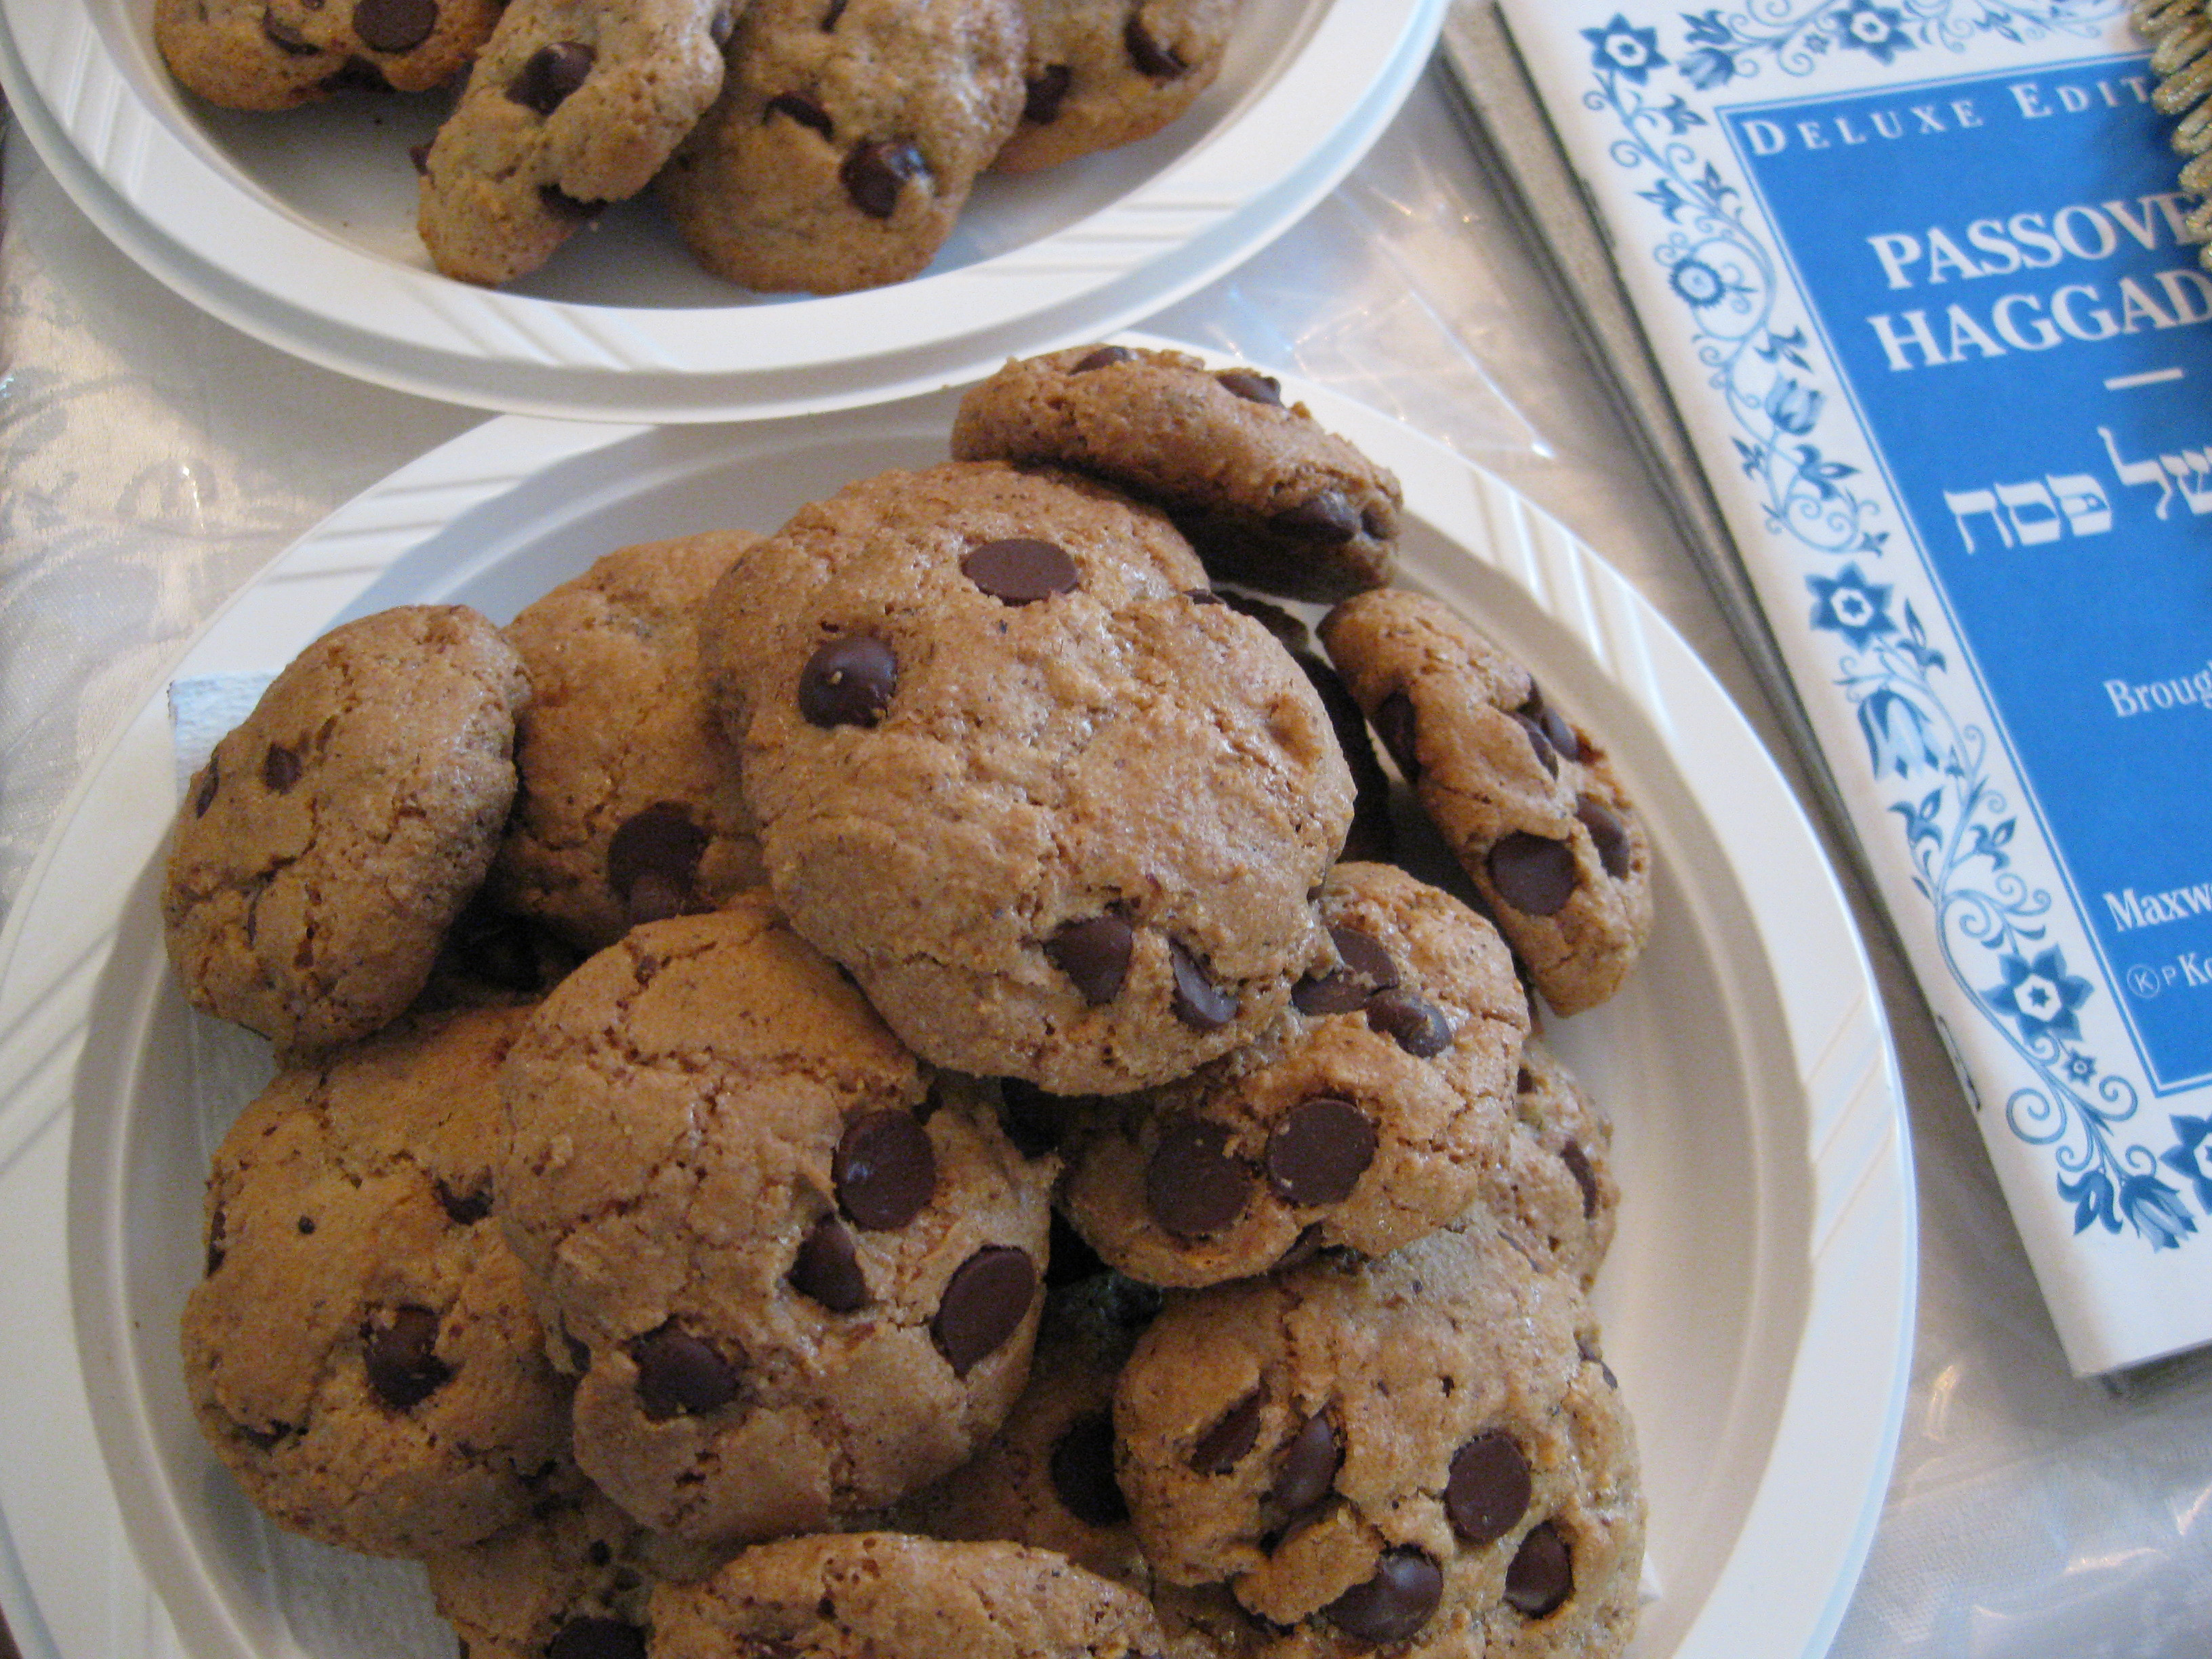 Passover Chocolate Chip Cookies  Chocolate Chip Cookies for Passover Gluten Free